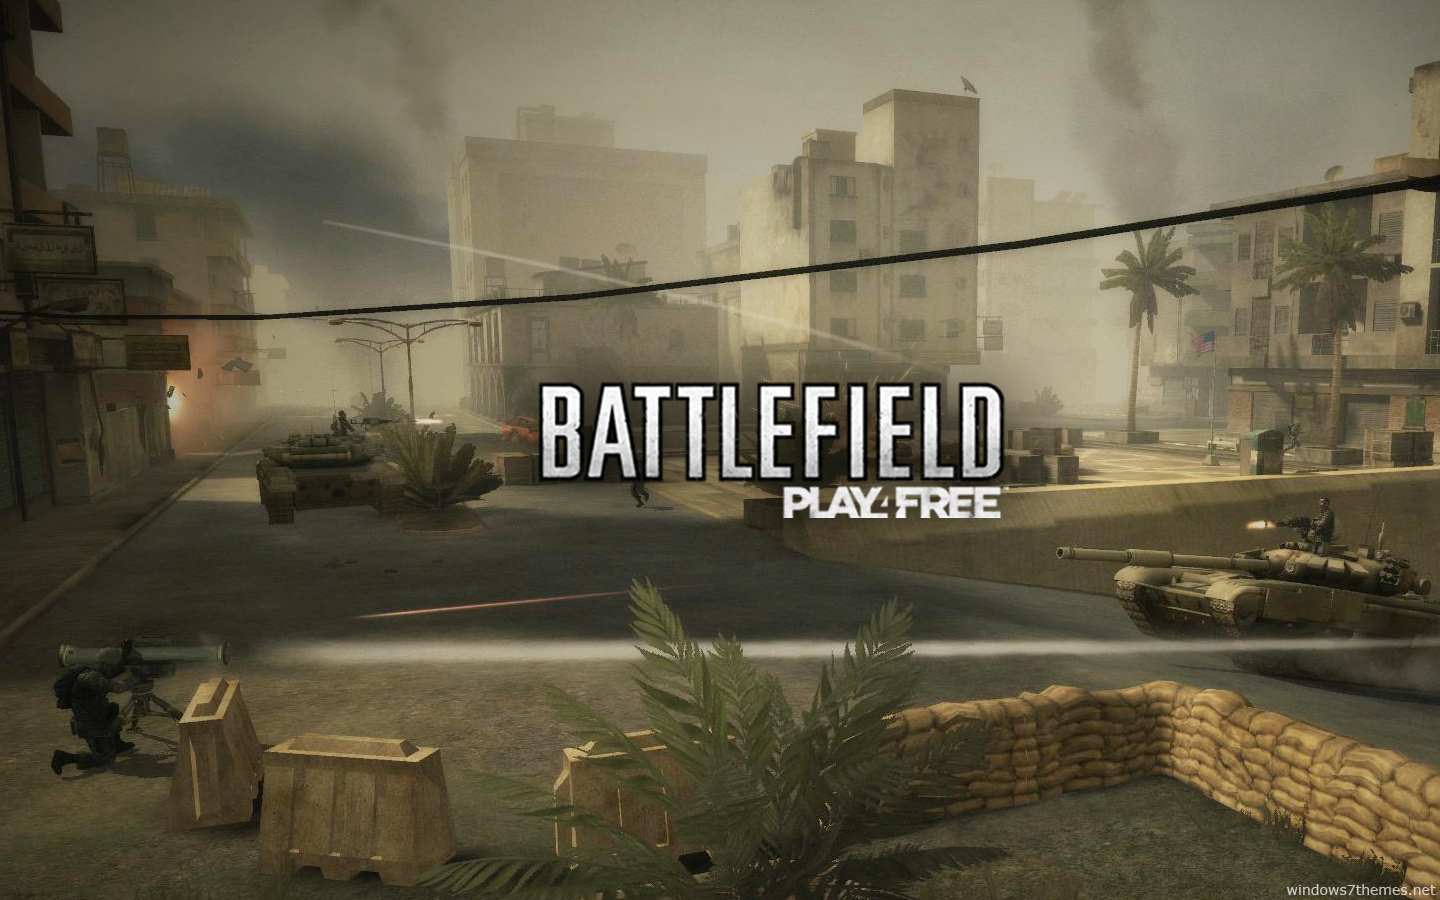 Currently all Battlefield Play4 wallpapers are only available as 1440x900